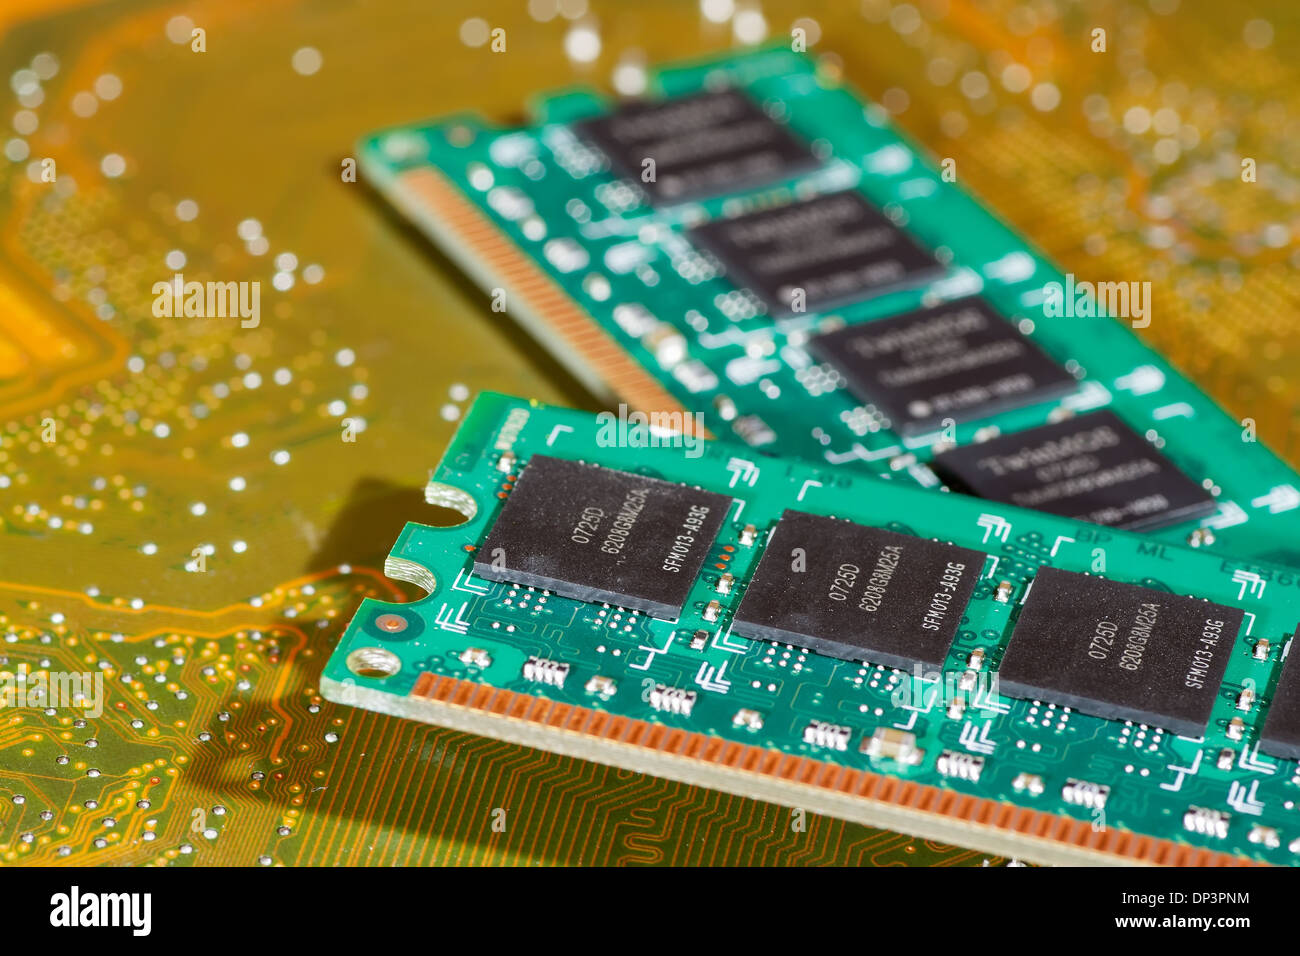 macro photography of two ram board on pcb motherboard - Stock Image